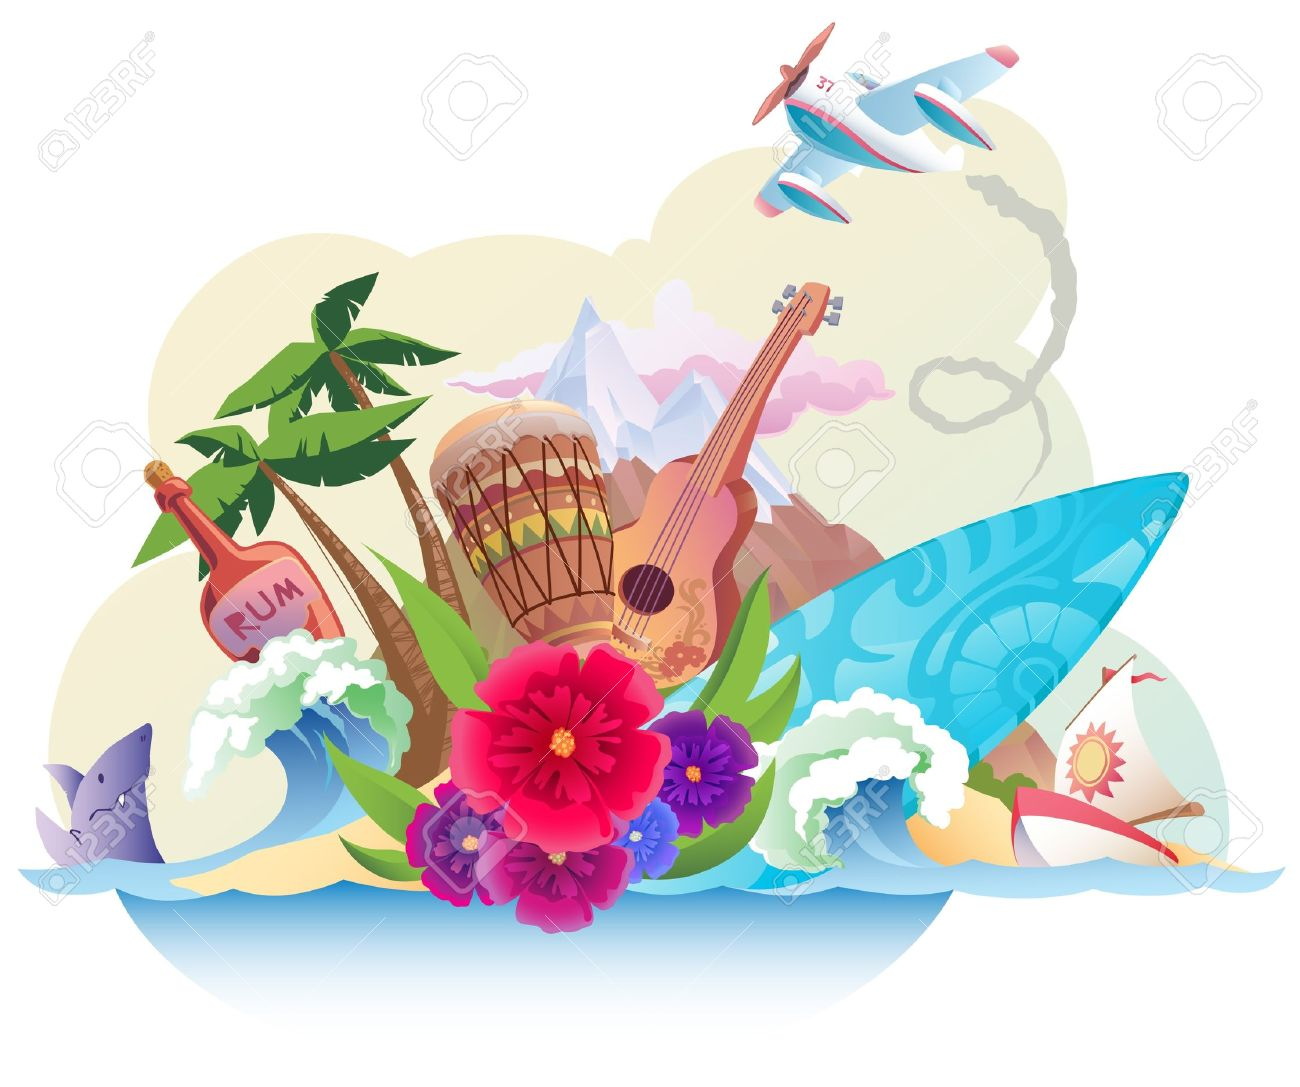 The tropical island with its music, surfing and the carefree lifestyle. Stock Vector - 12482898